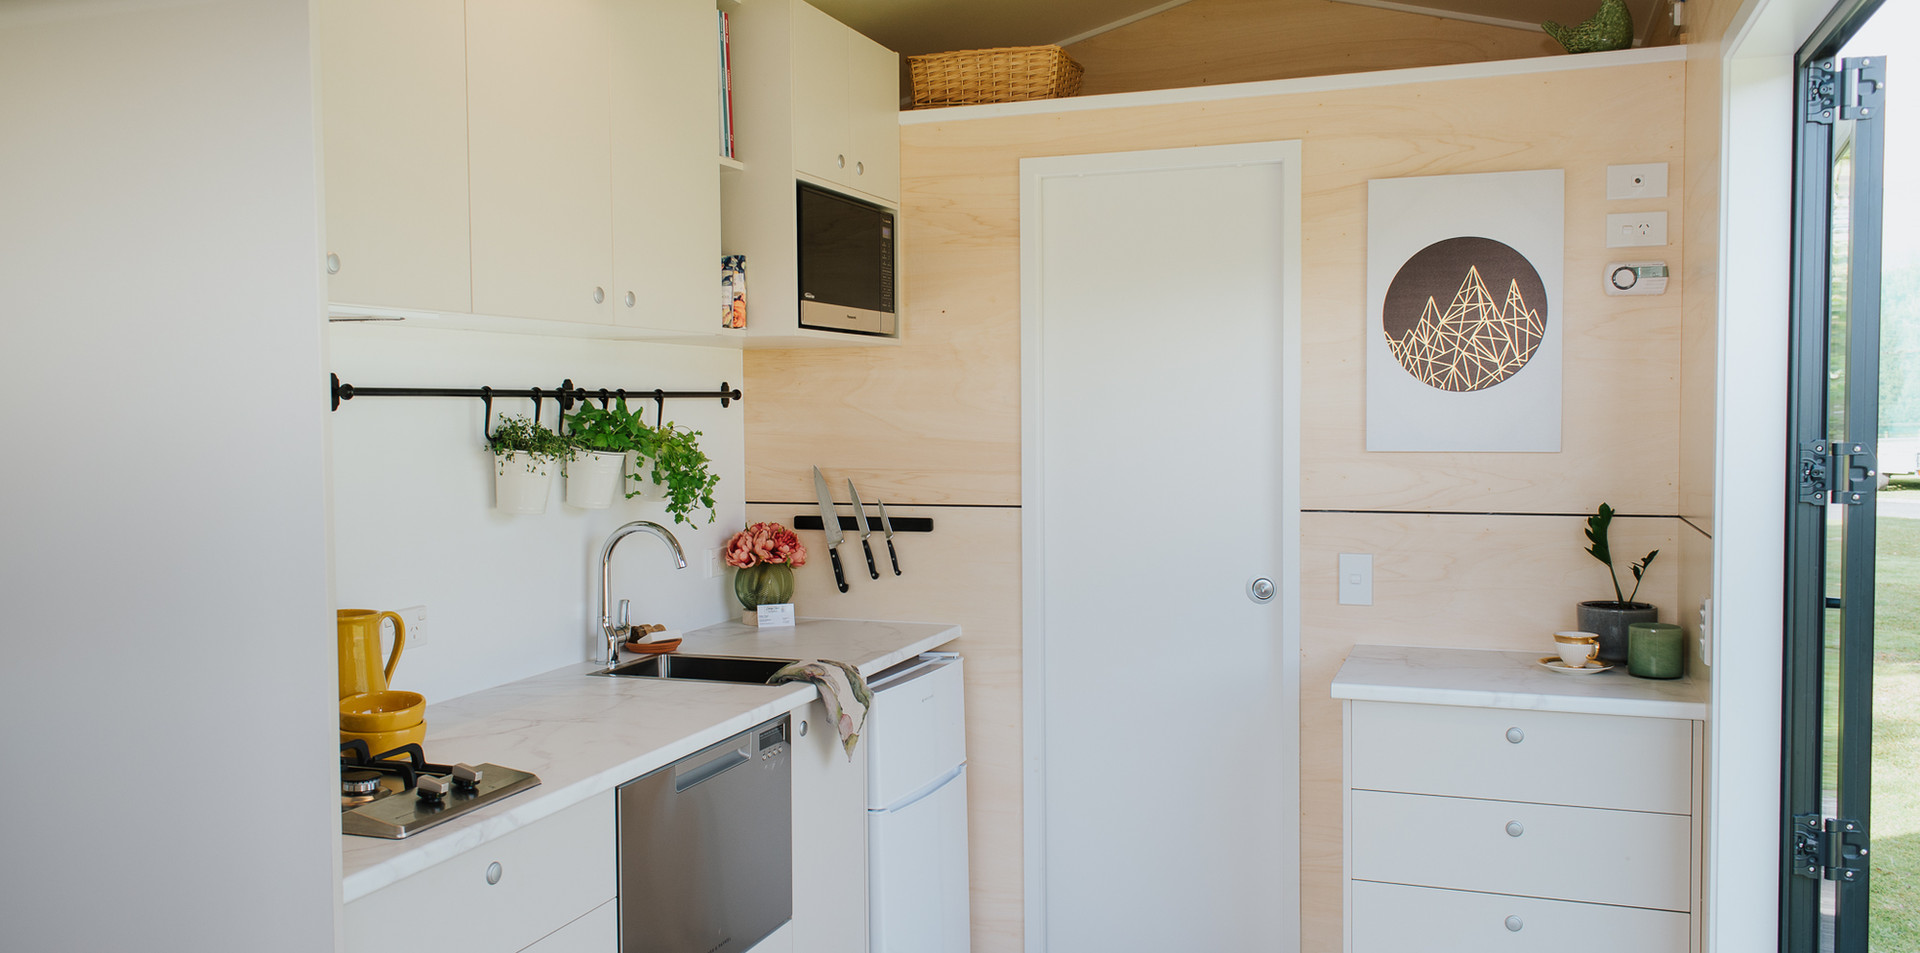 Camper Tiny House